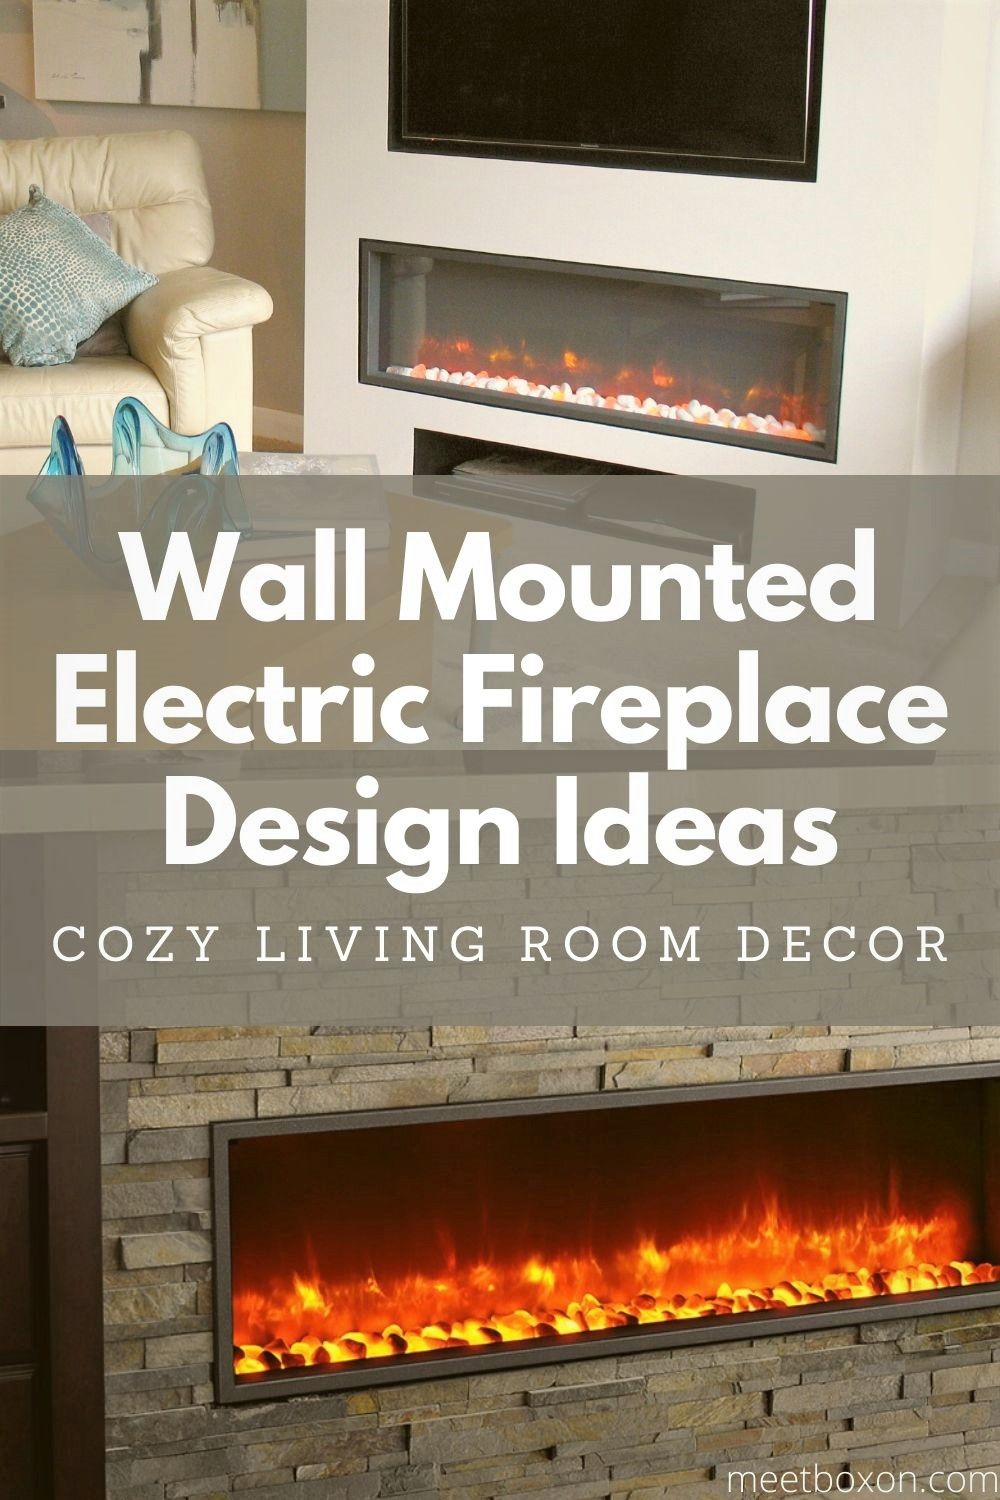 Wall Mounted Electric Fireplace Design Ideas For Cozy Living Room Decor In 2020 Wall Mount Electric Fireplace Living Room Decor Cozy Fireplace Design